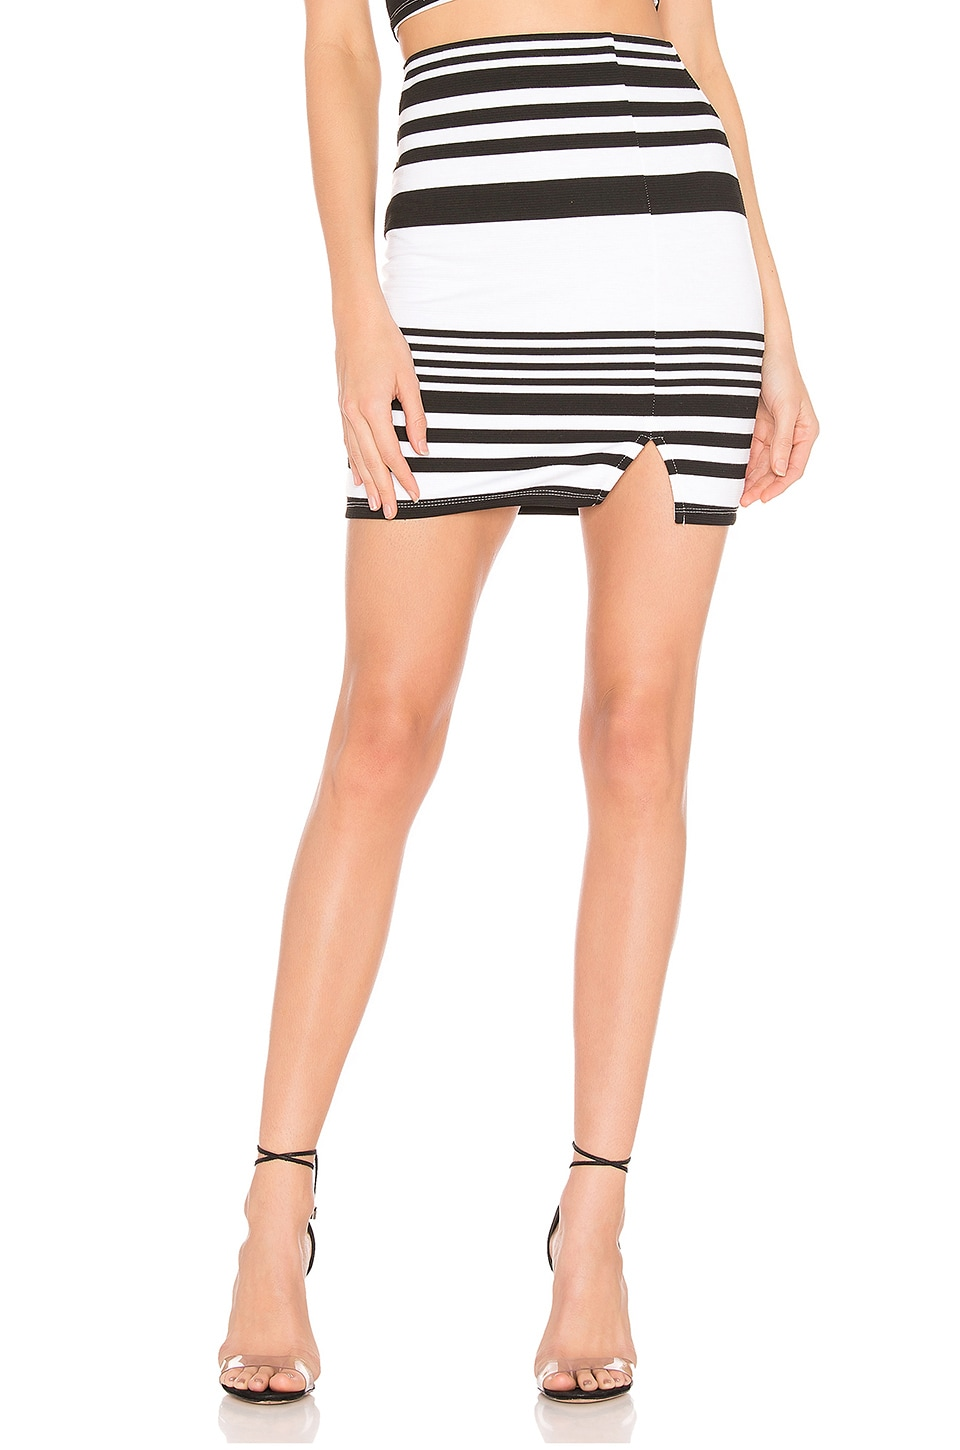 Lovers + Friends Mari Mini Skirt in Black & White